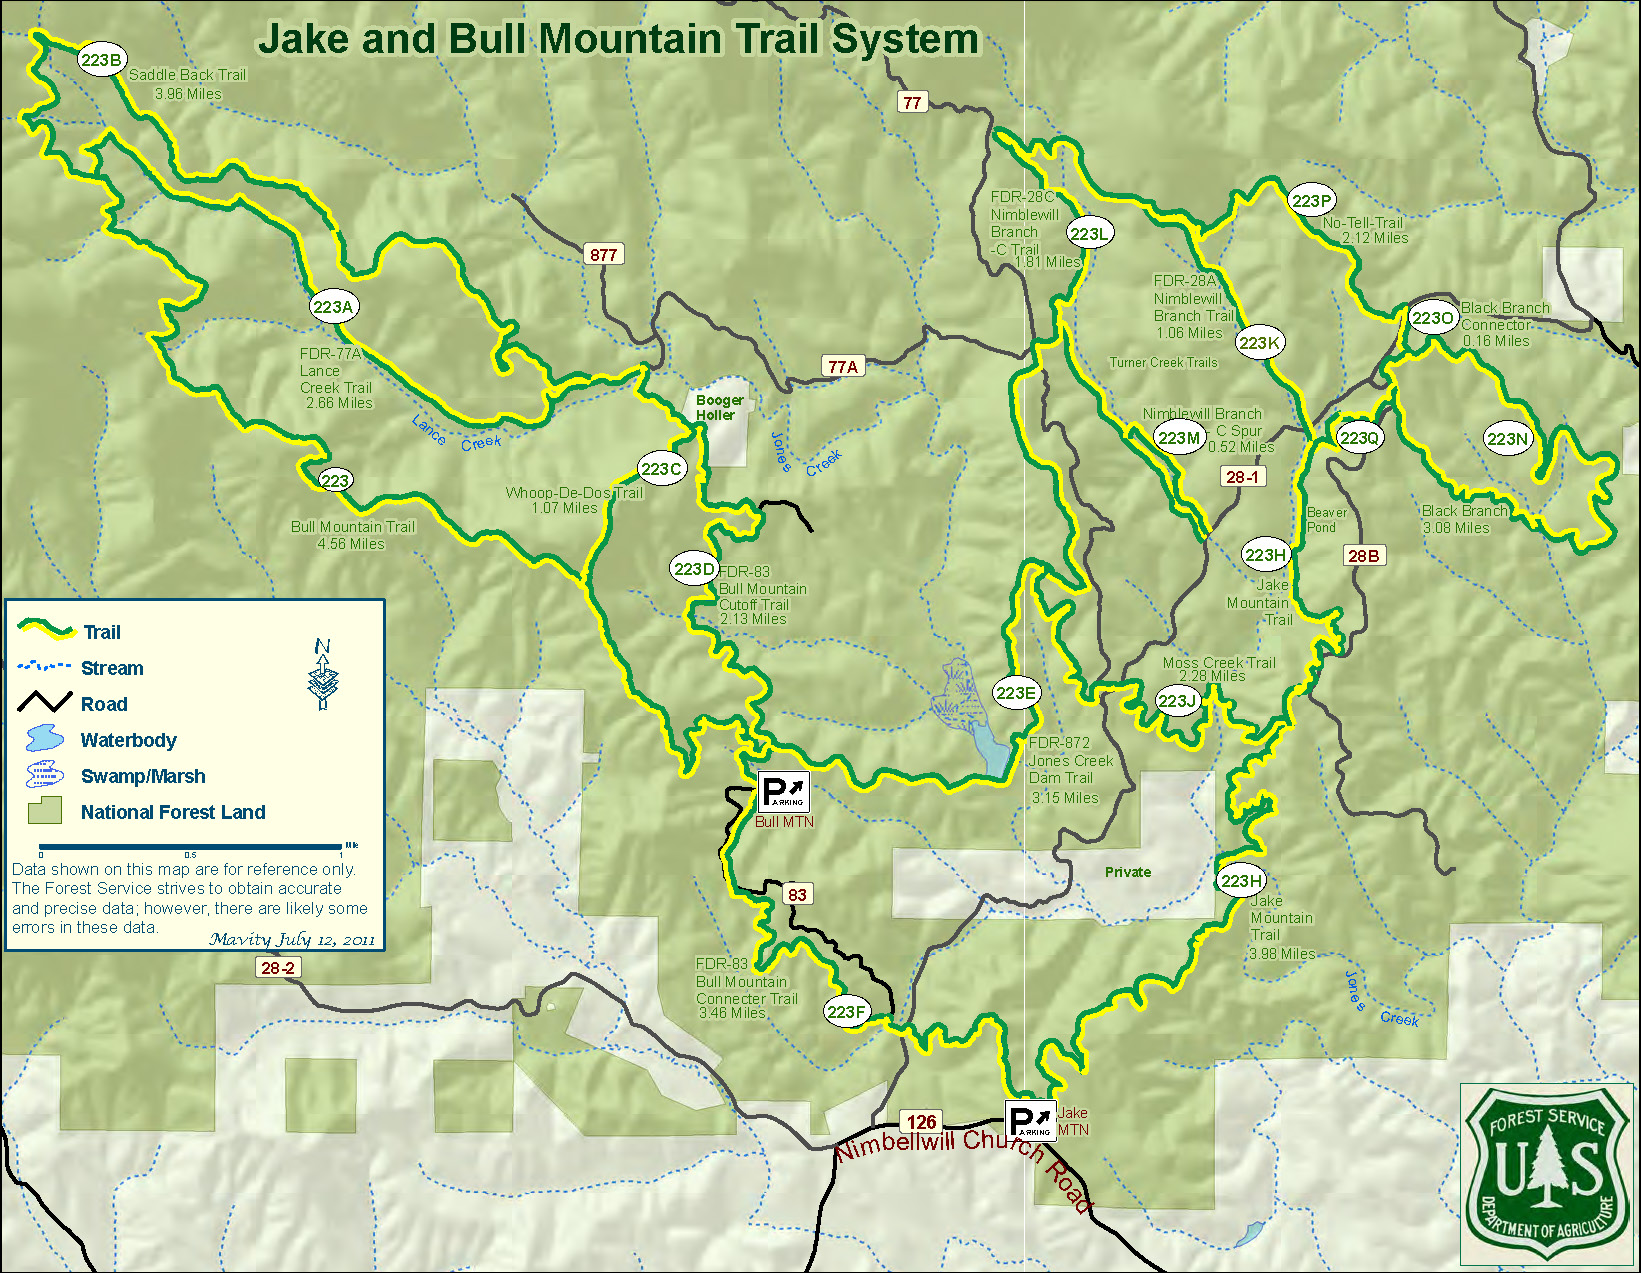 Map of Jake and Bull Mountain Trail System